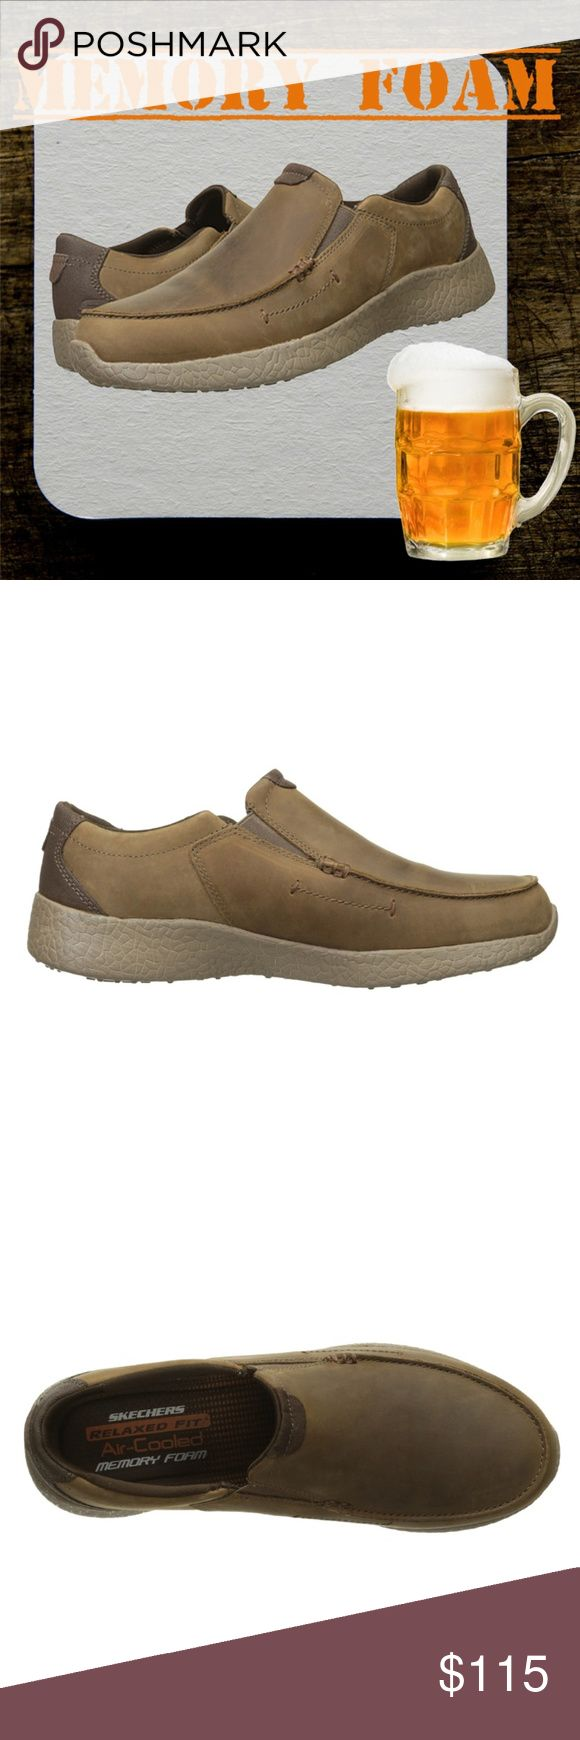 SKECHERS Burst - Valid Men's Slip-on Loafer Shoes ✔Take advanced comfort technology into a versatile style with the SKECHERS Burst - Valid Men's slip-on loafer shoe.  ✔Features: Air Cooled Memory Foam insole, Burst Technology midsole. Dual side elastic panels for easy slip on fit. Padded collar. Flexible outsole with Burst Grip traction design.  ✔Material: Smooth oiled leather suede upper. Textured rubber midsole finish.  ✔Size: 10 Medium  ✔Color: Brown  ✔Condition: Brand New in box, manufacturer packaged and sealed. Skechers Shoes Loafers & Slip-Ons